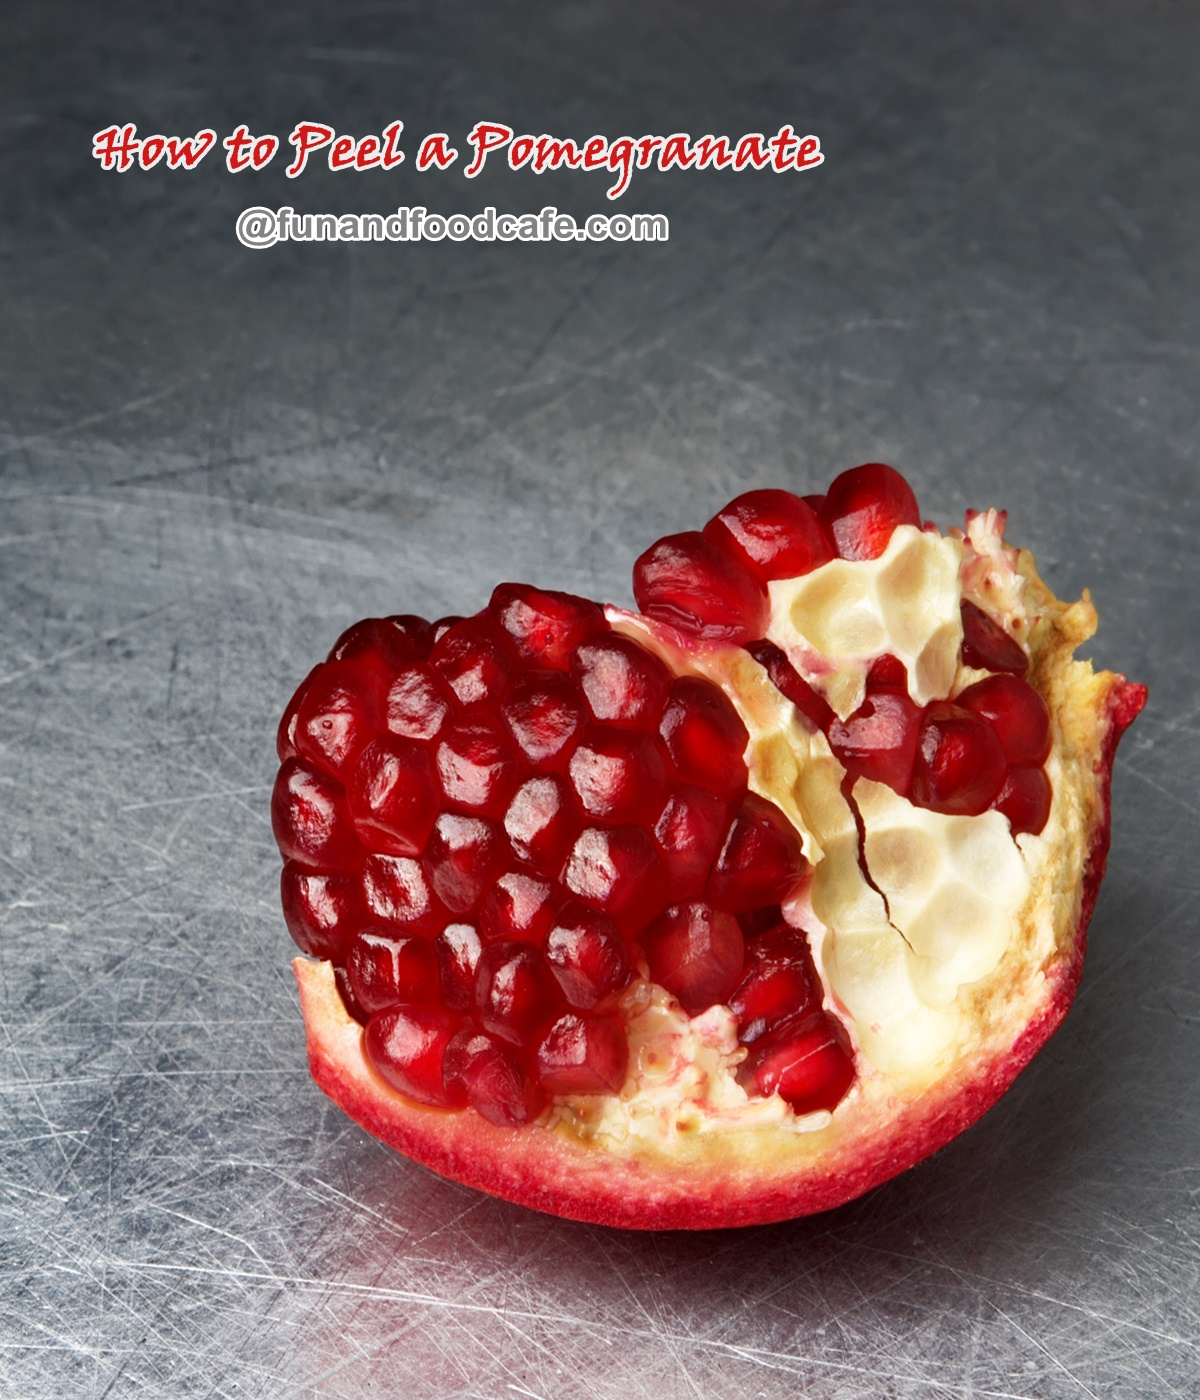 Pomegranate-benefits-how-to